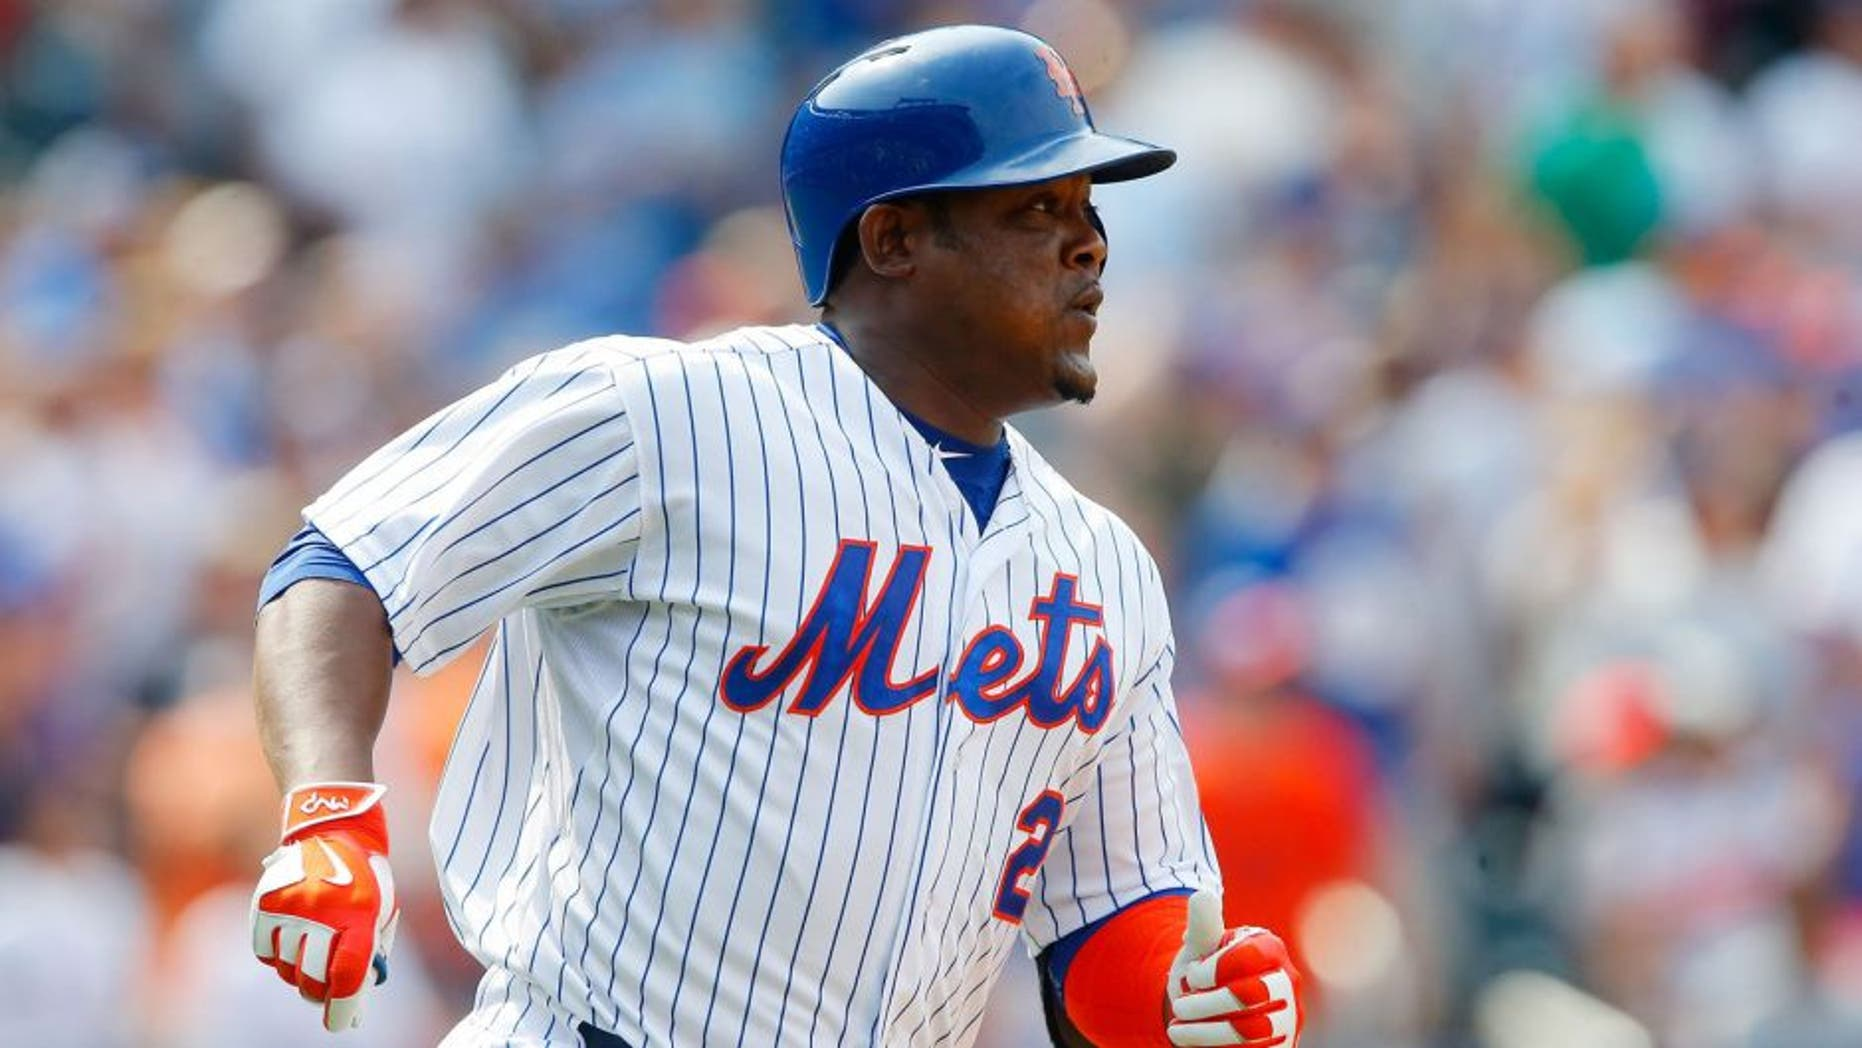 NEW YORK, NY - AUGUST 30: Juan Uribe #2 of the New York Mets in action against the bb at Citi Field on August 30, 2015 in the Flushing neighborhood of the Queens borough of New York City. The Mets defeated the Red Sox 5-4. (Photo by Jim McIsaac/Getty Images)